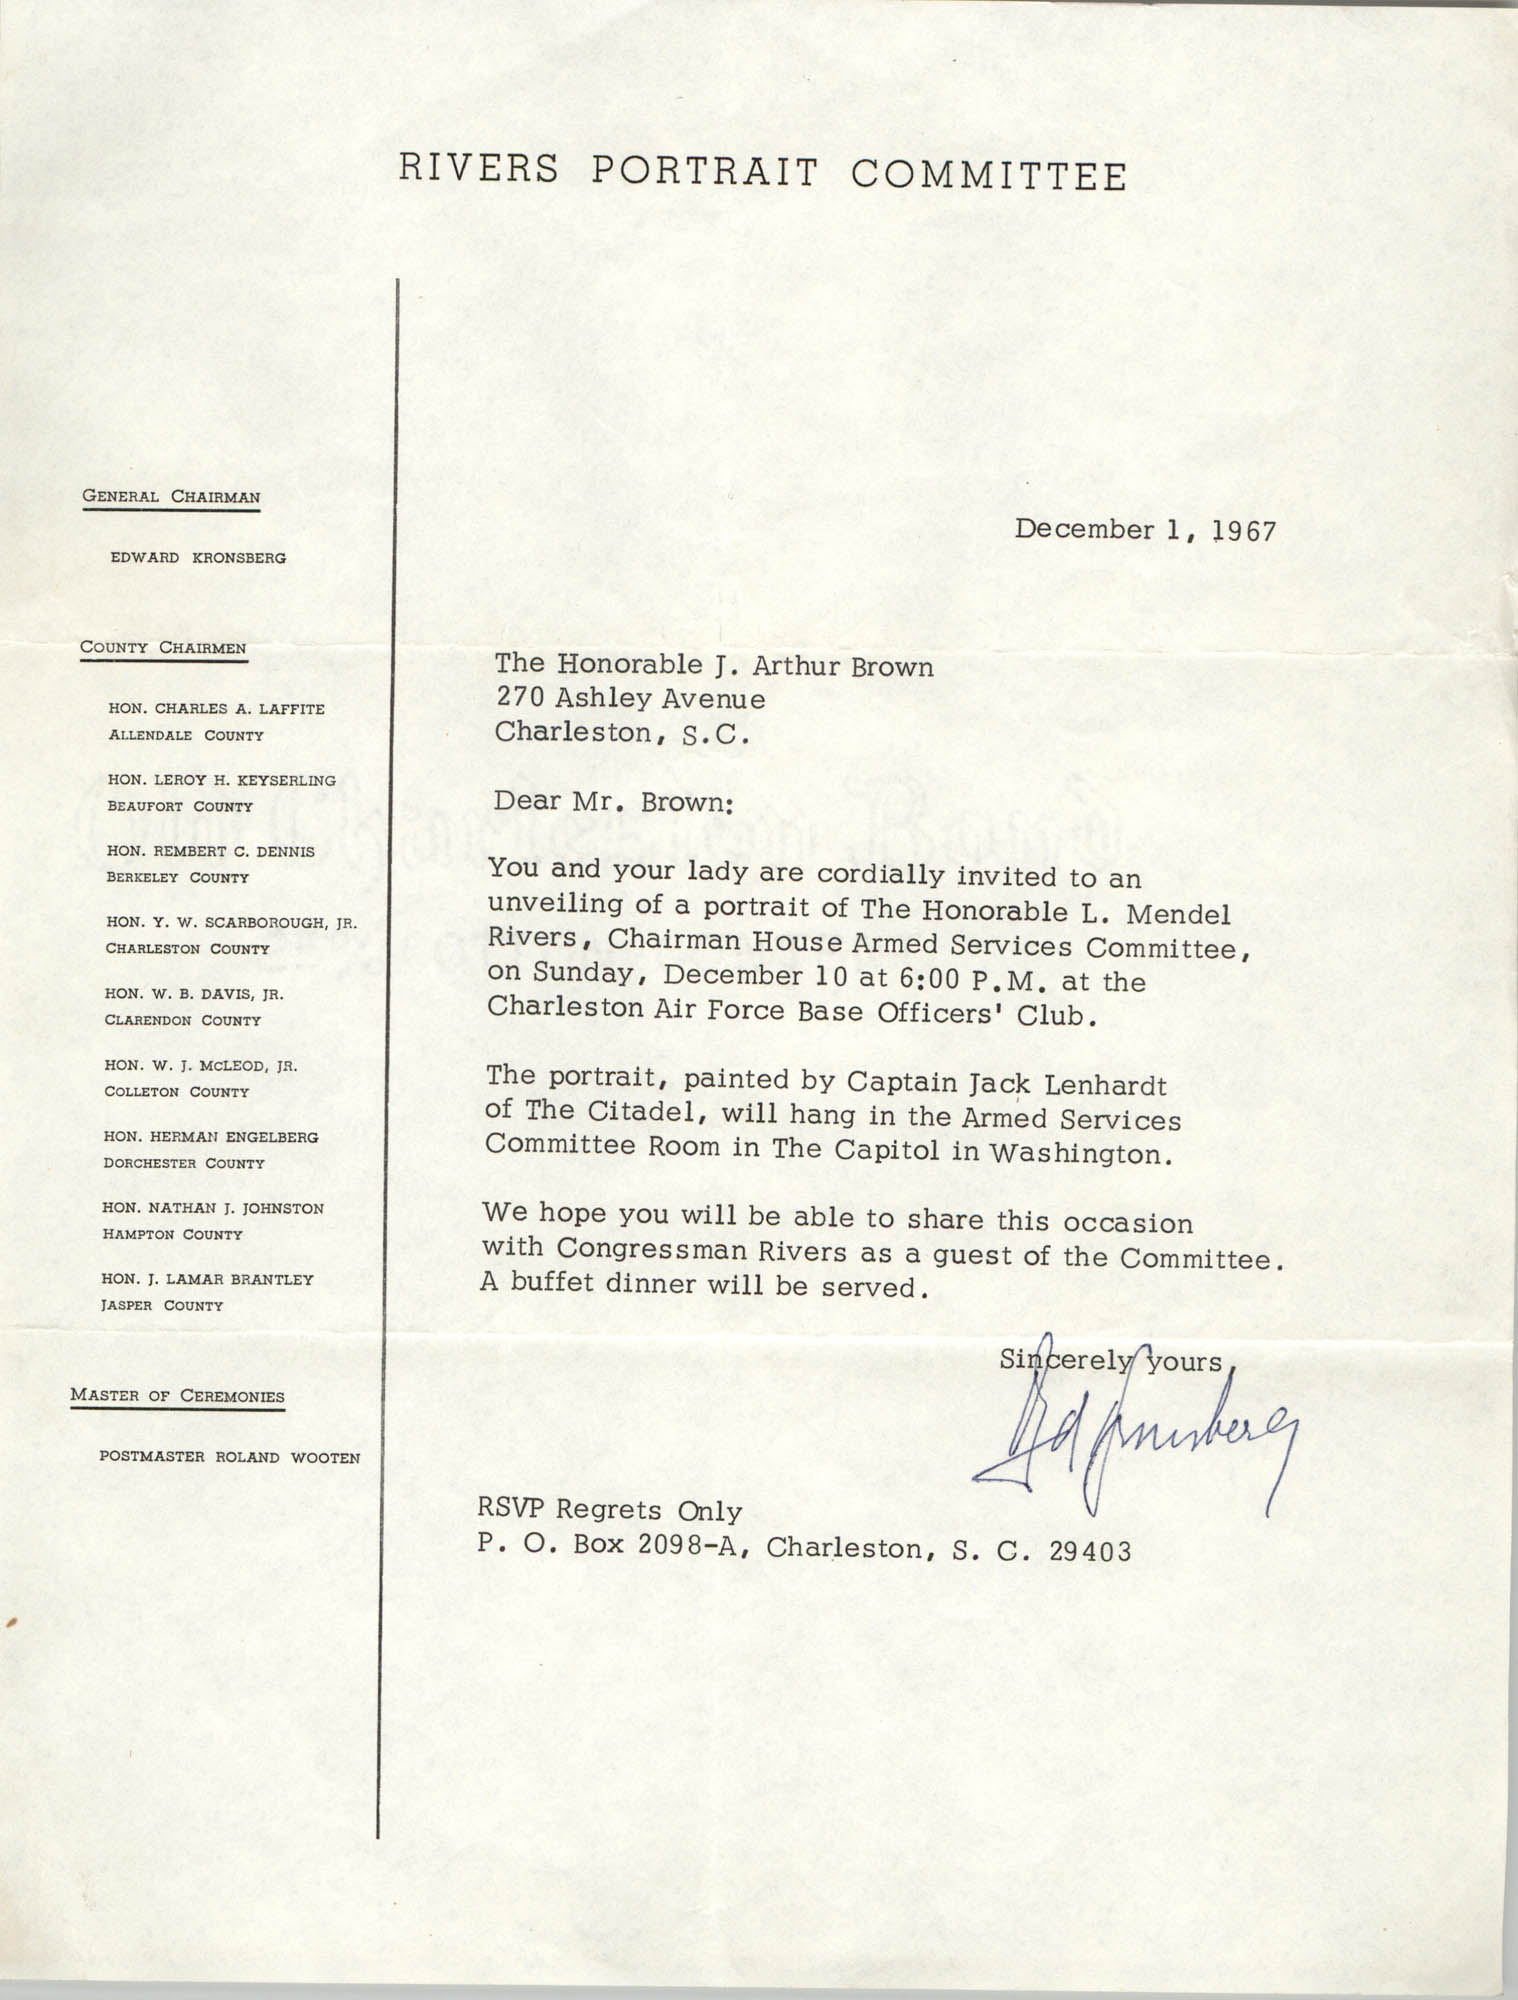 Letter from Edward Kronsberg to J. Arthur Brown, December 1, 1967